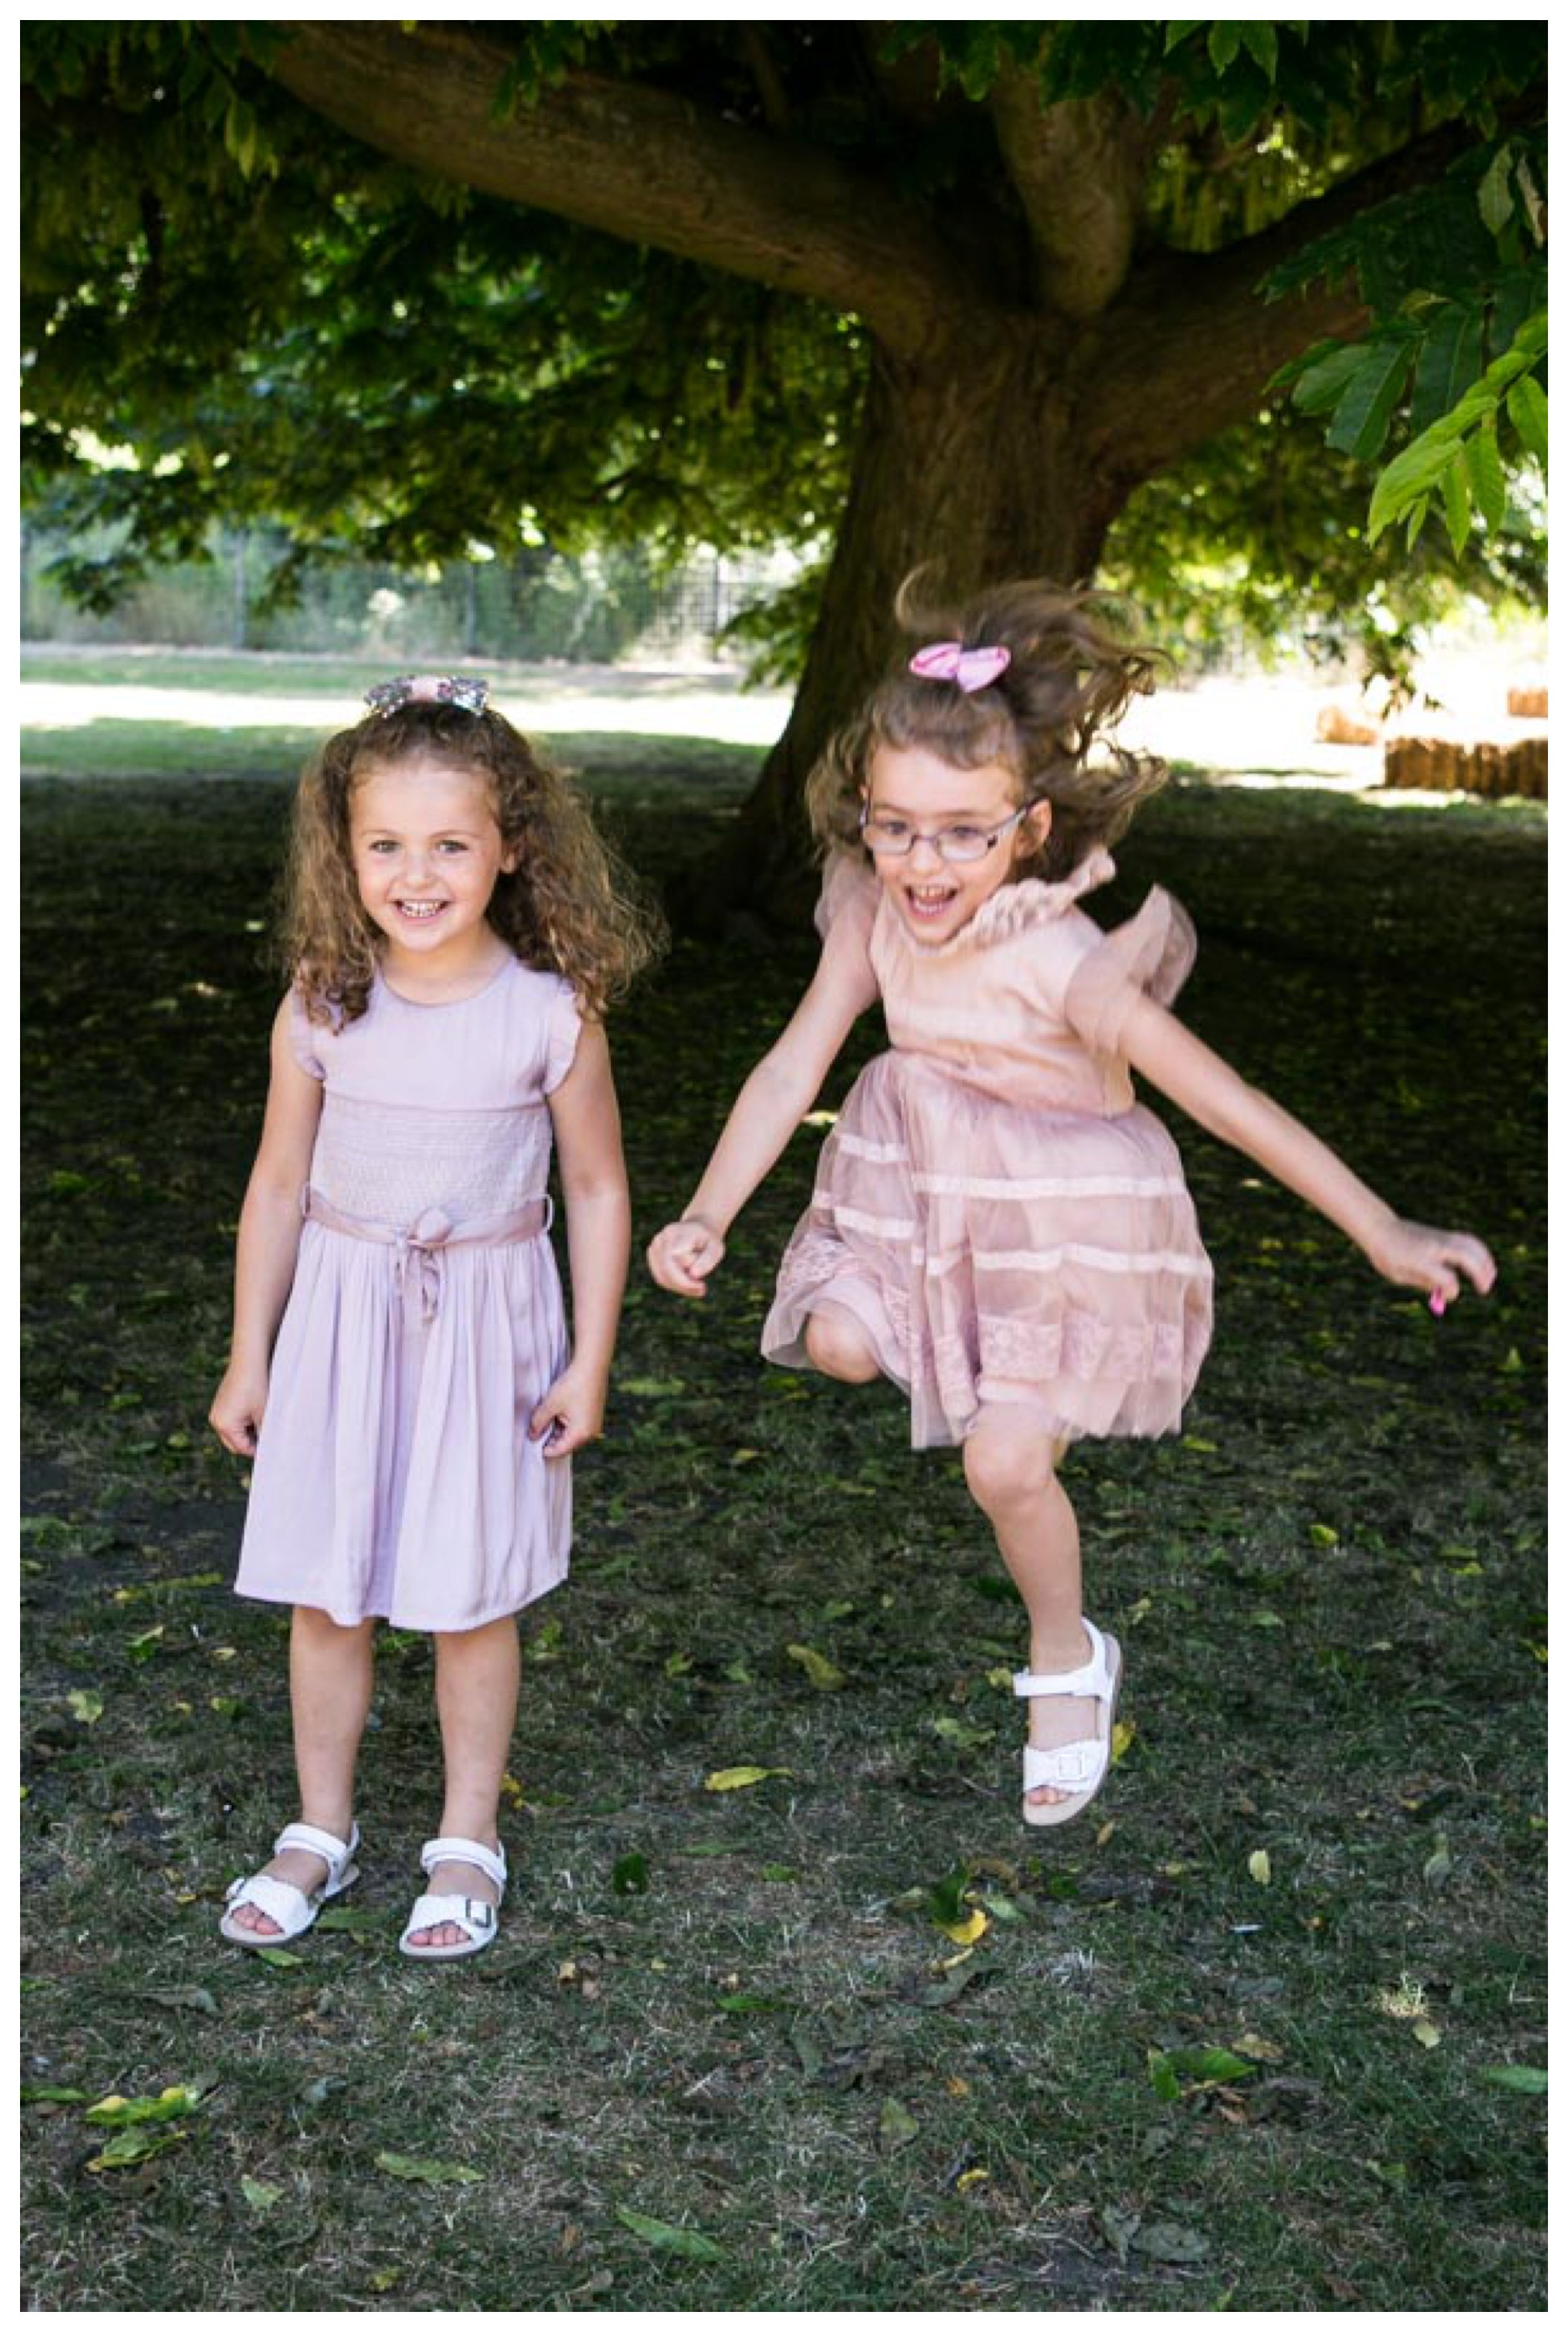 twin girls, one jumping, by large tree